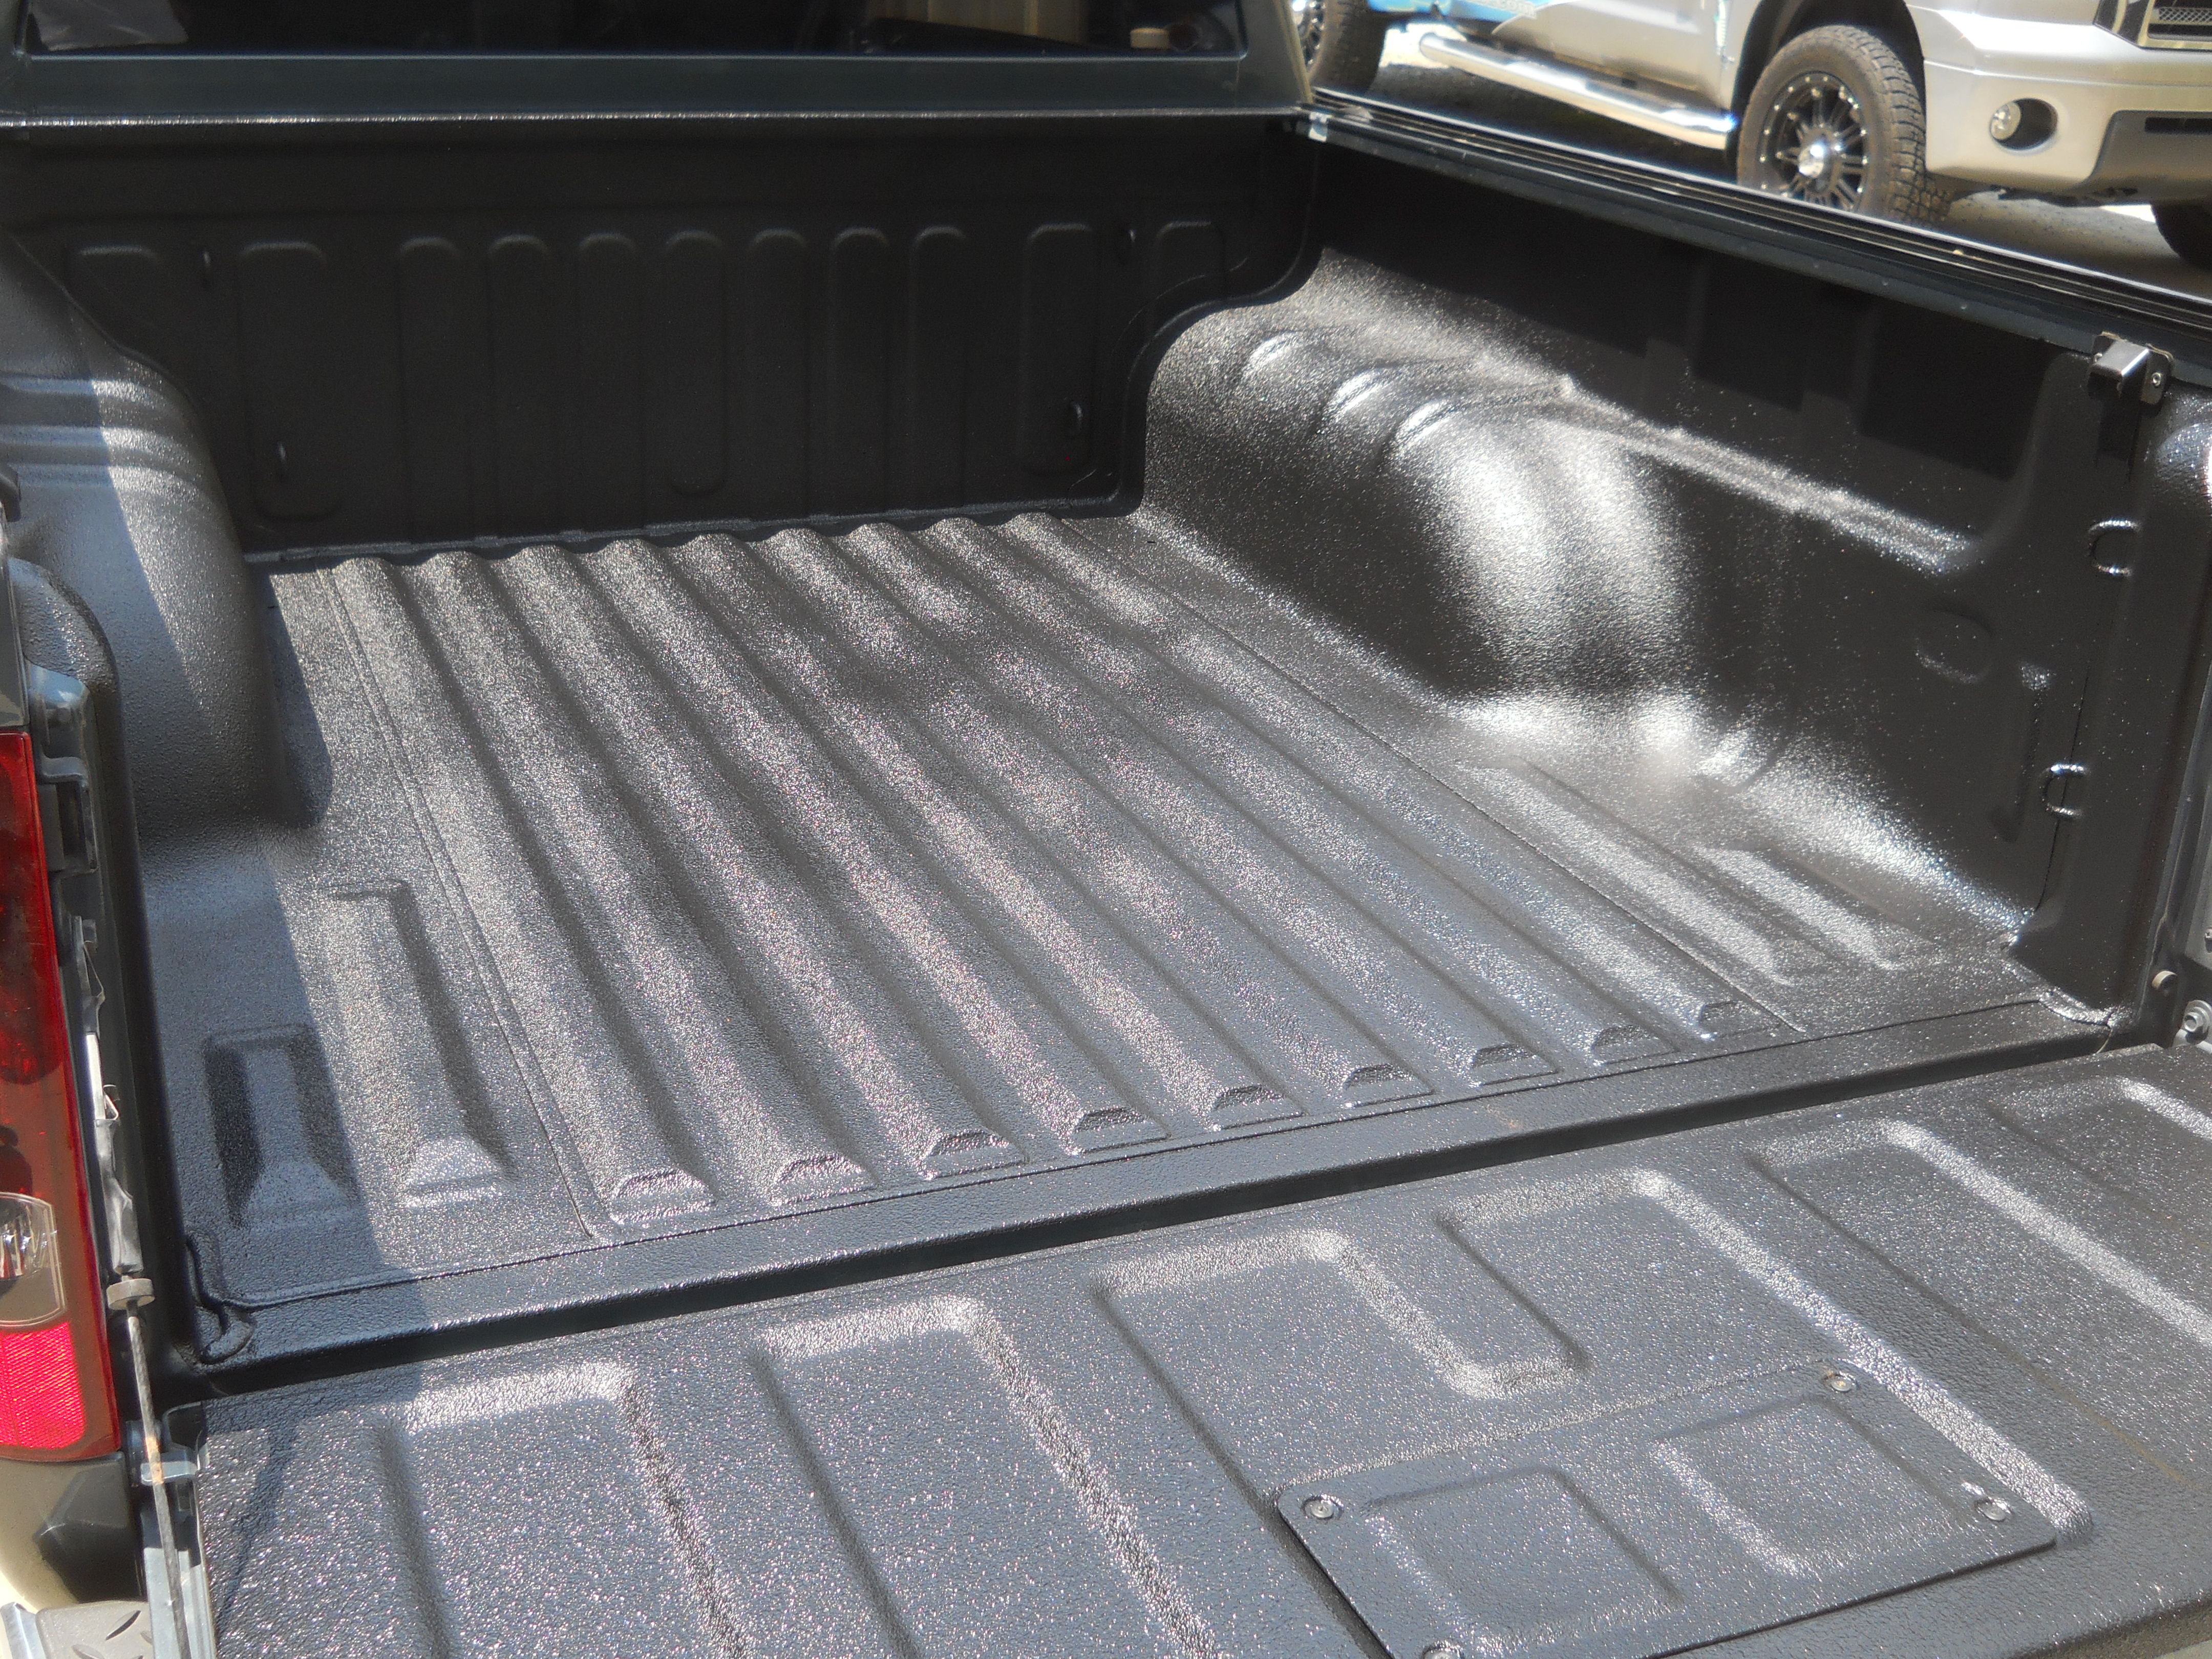 Upol Bed Liner Review